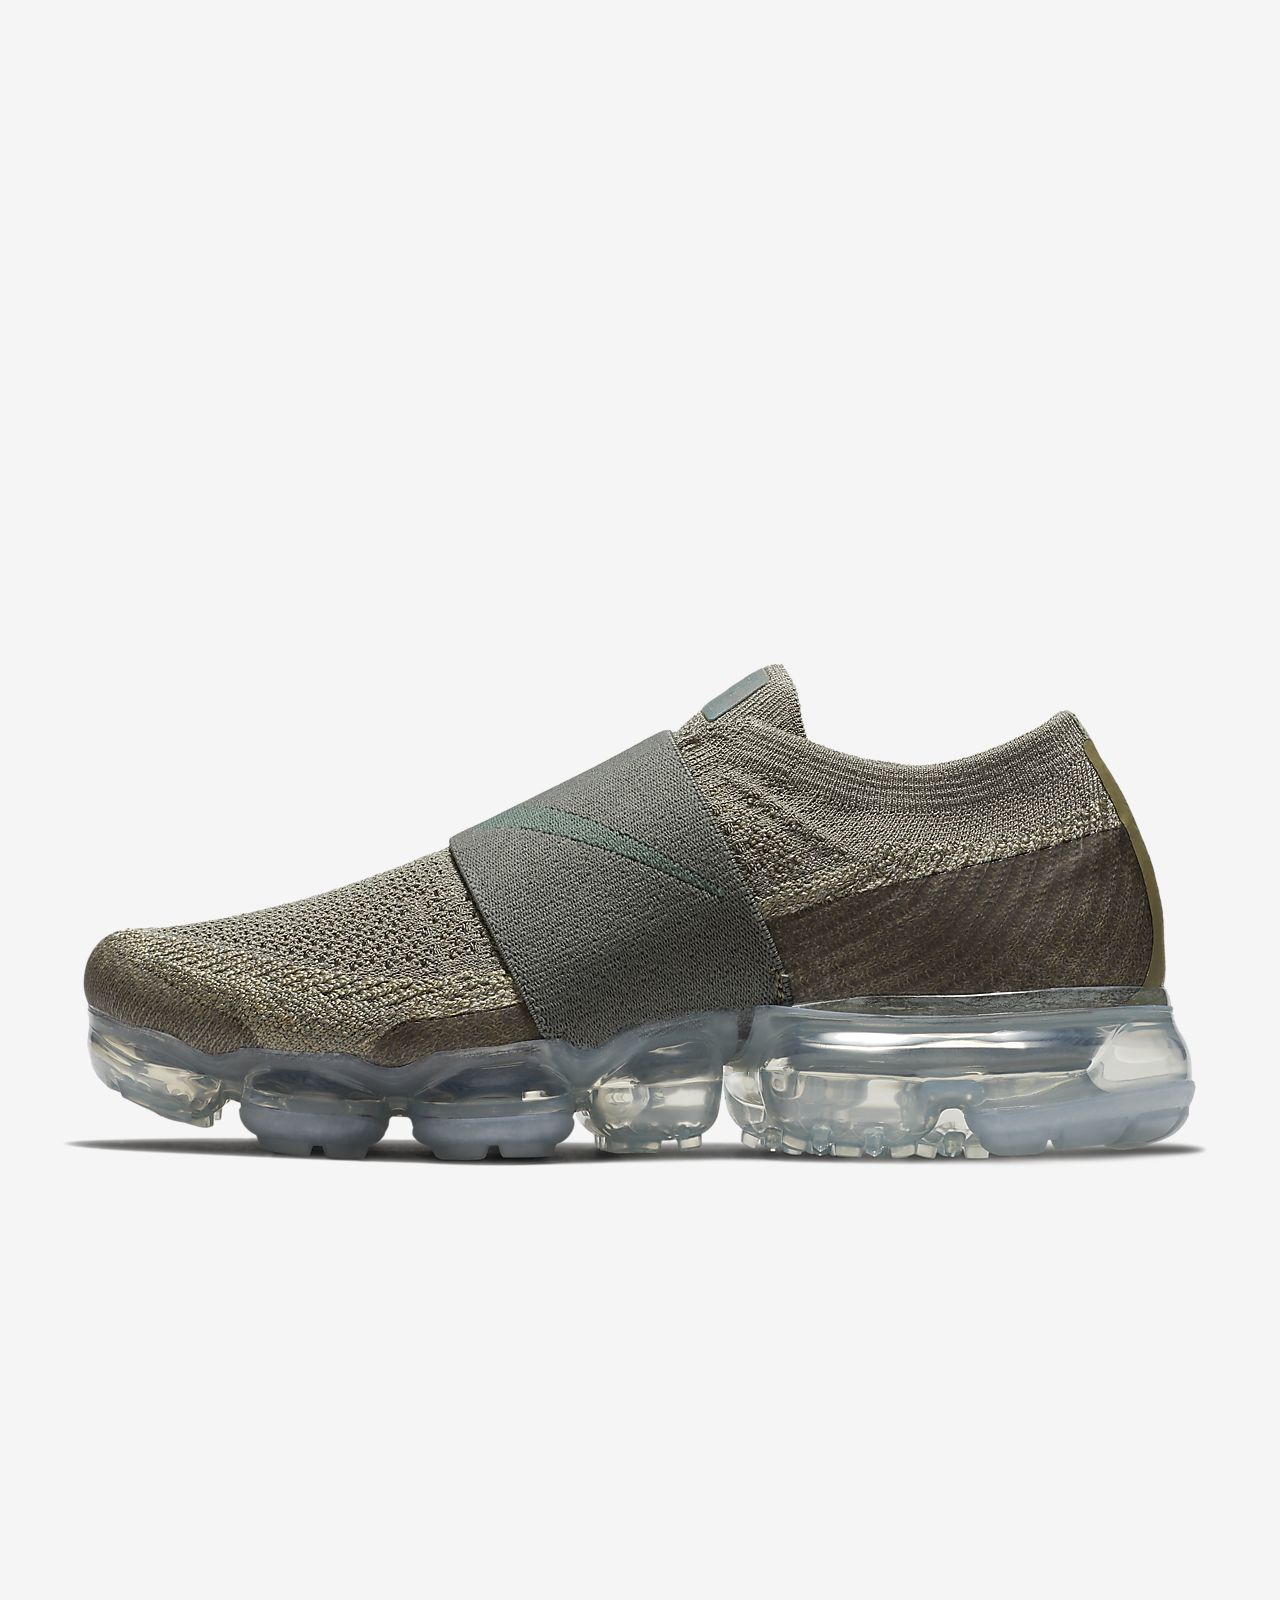 Nike WMNS Pro Air Vapormax Flyknit Moc Brand Multi Color Black Offer Anthracite Volt AA4155 003